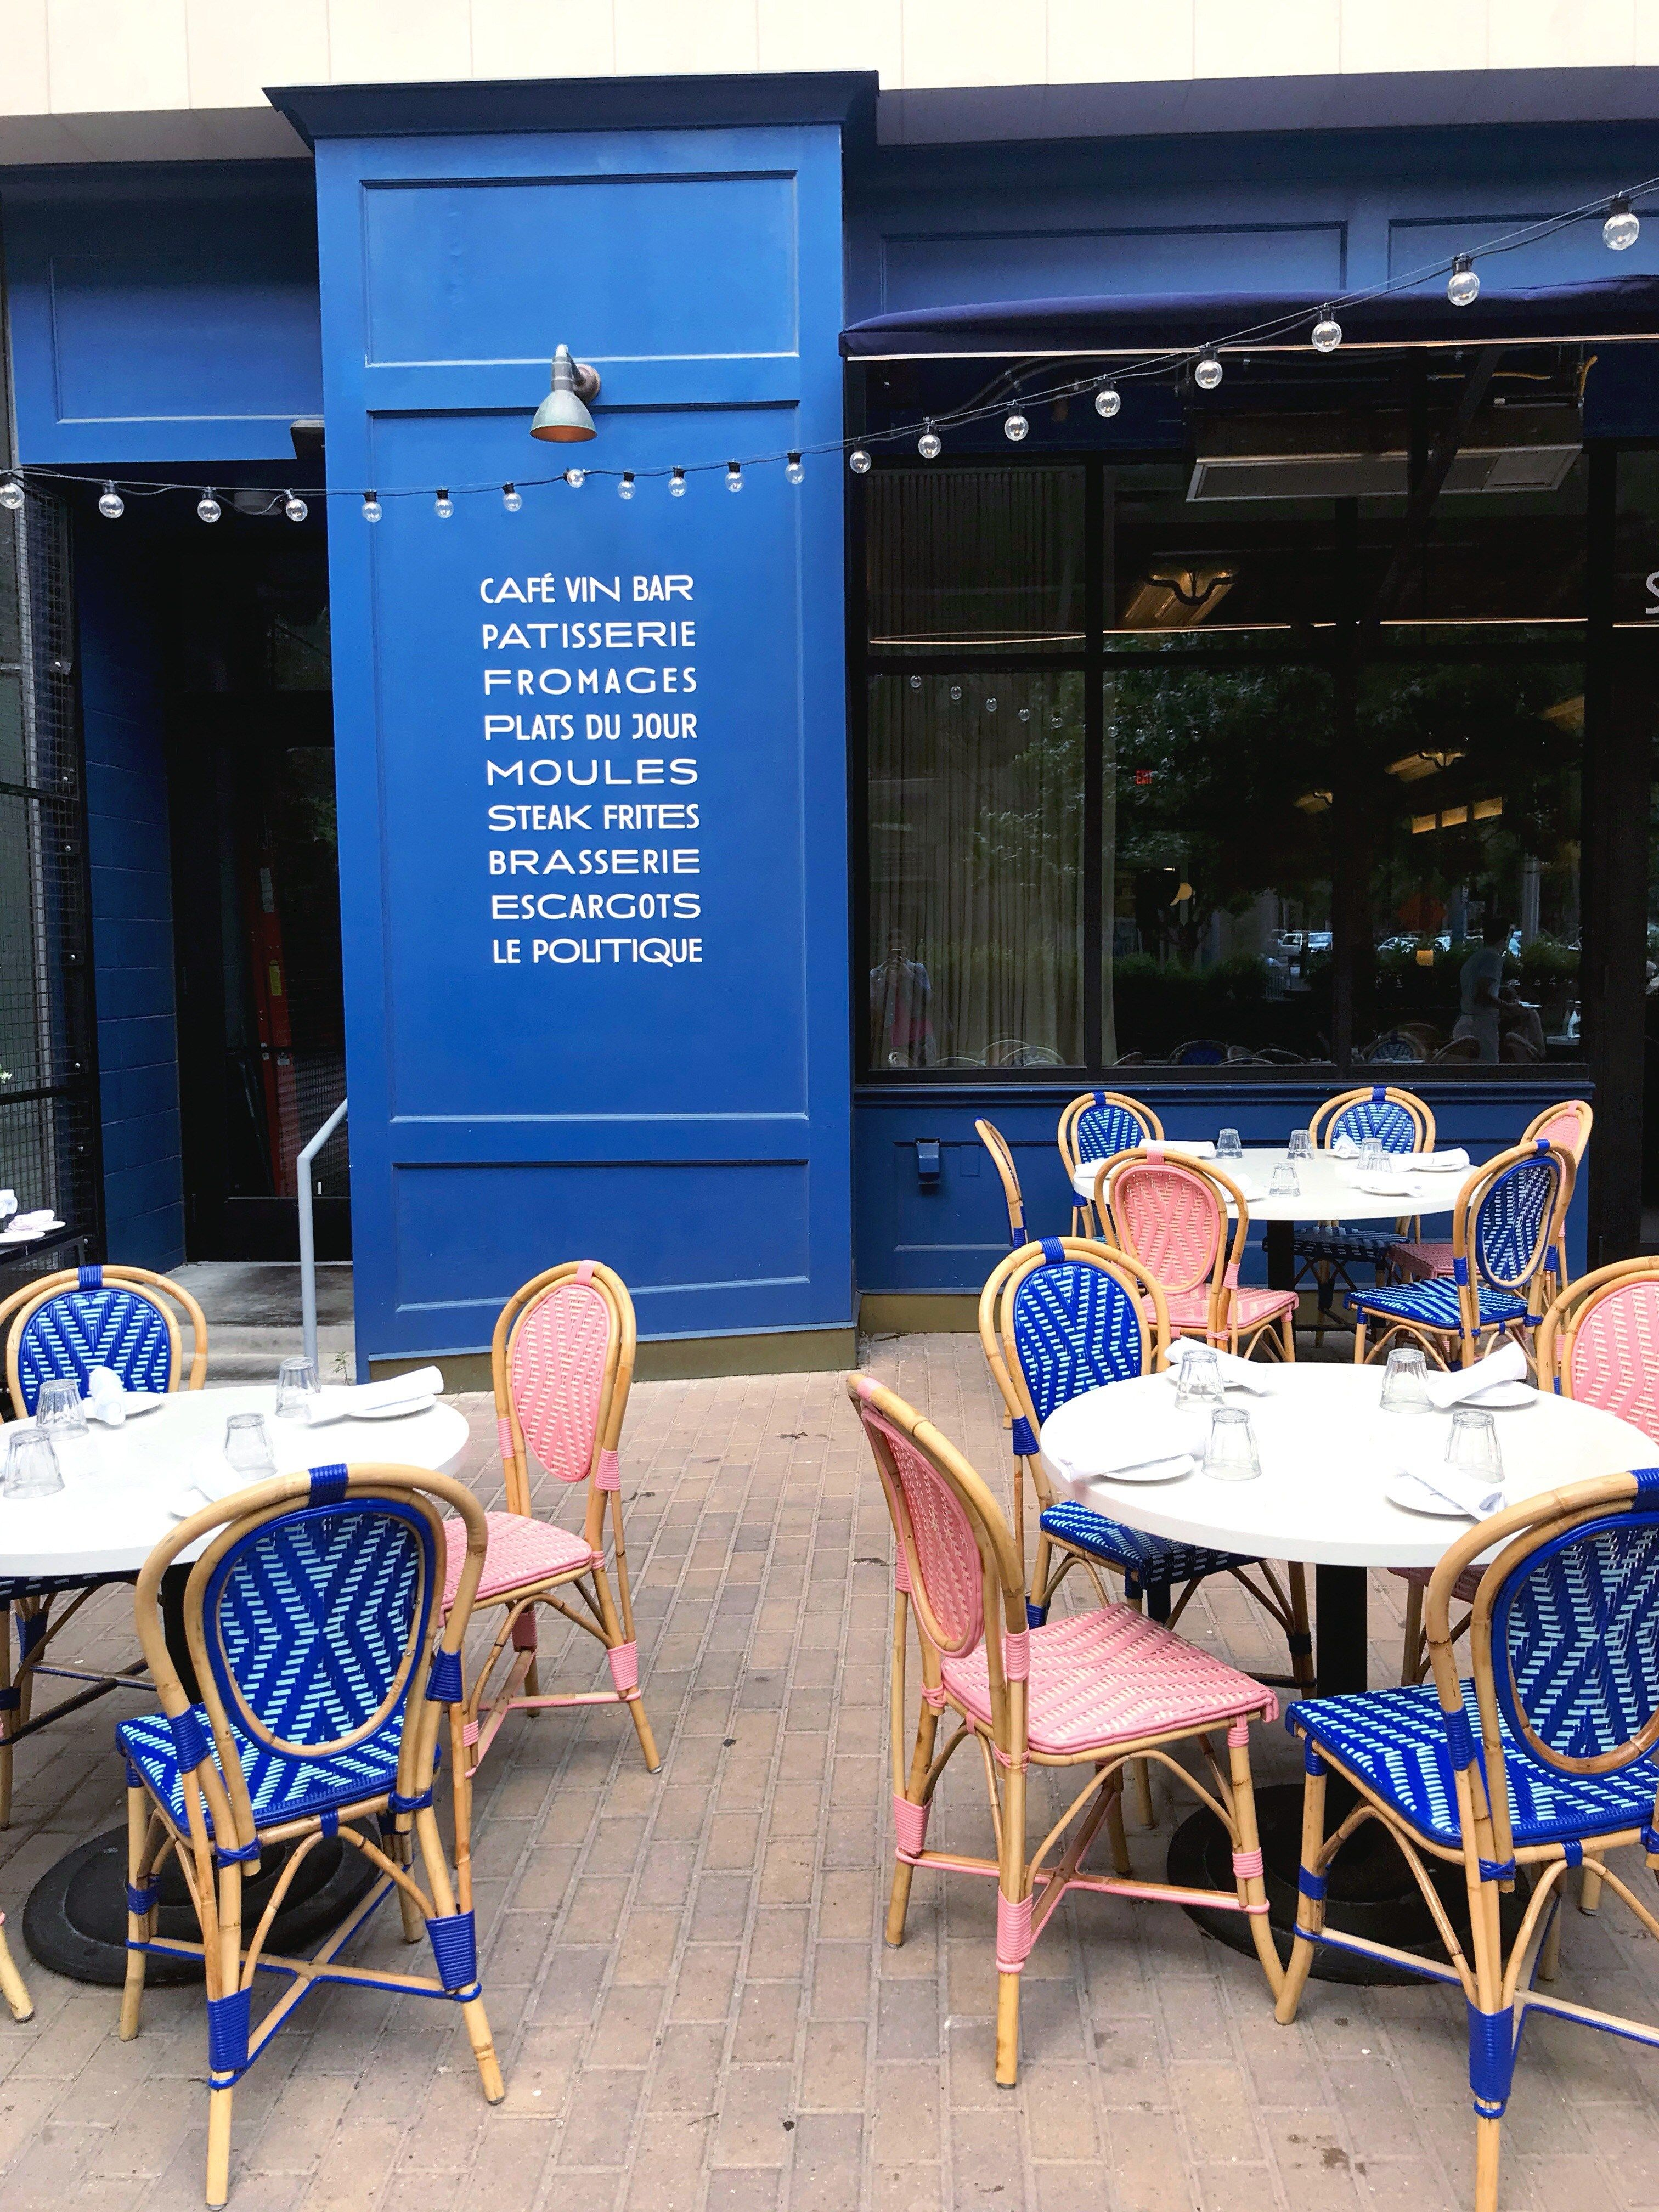 5 Spots To Visit While In Austin, TX | Outdoor furniture ...